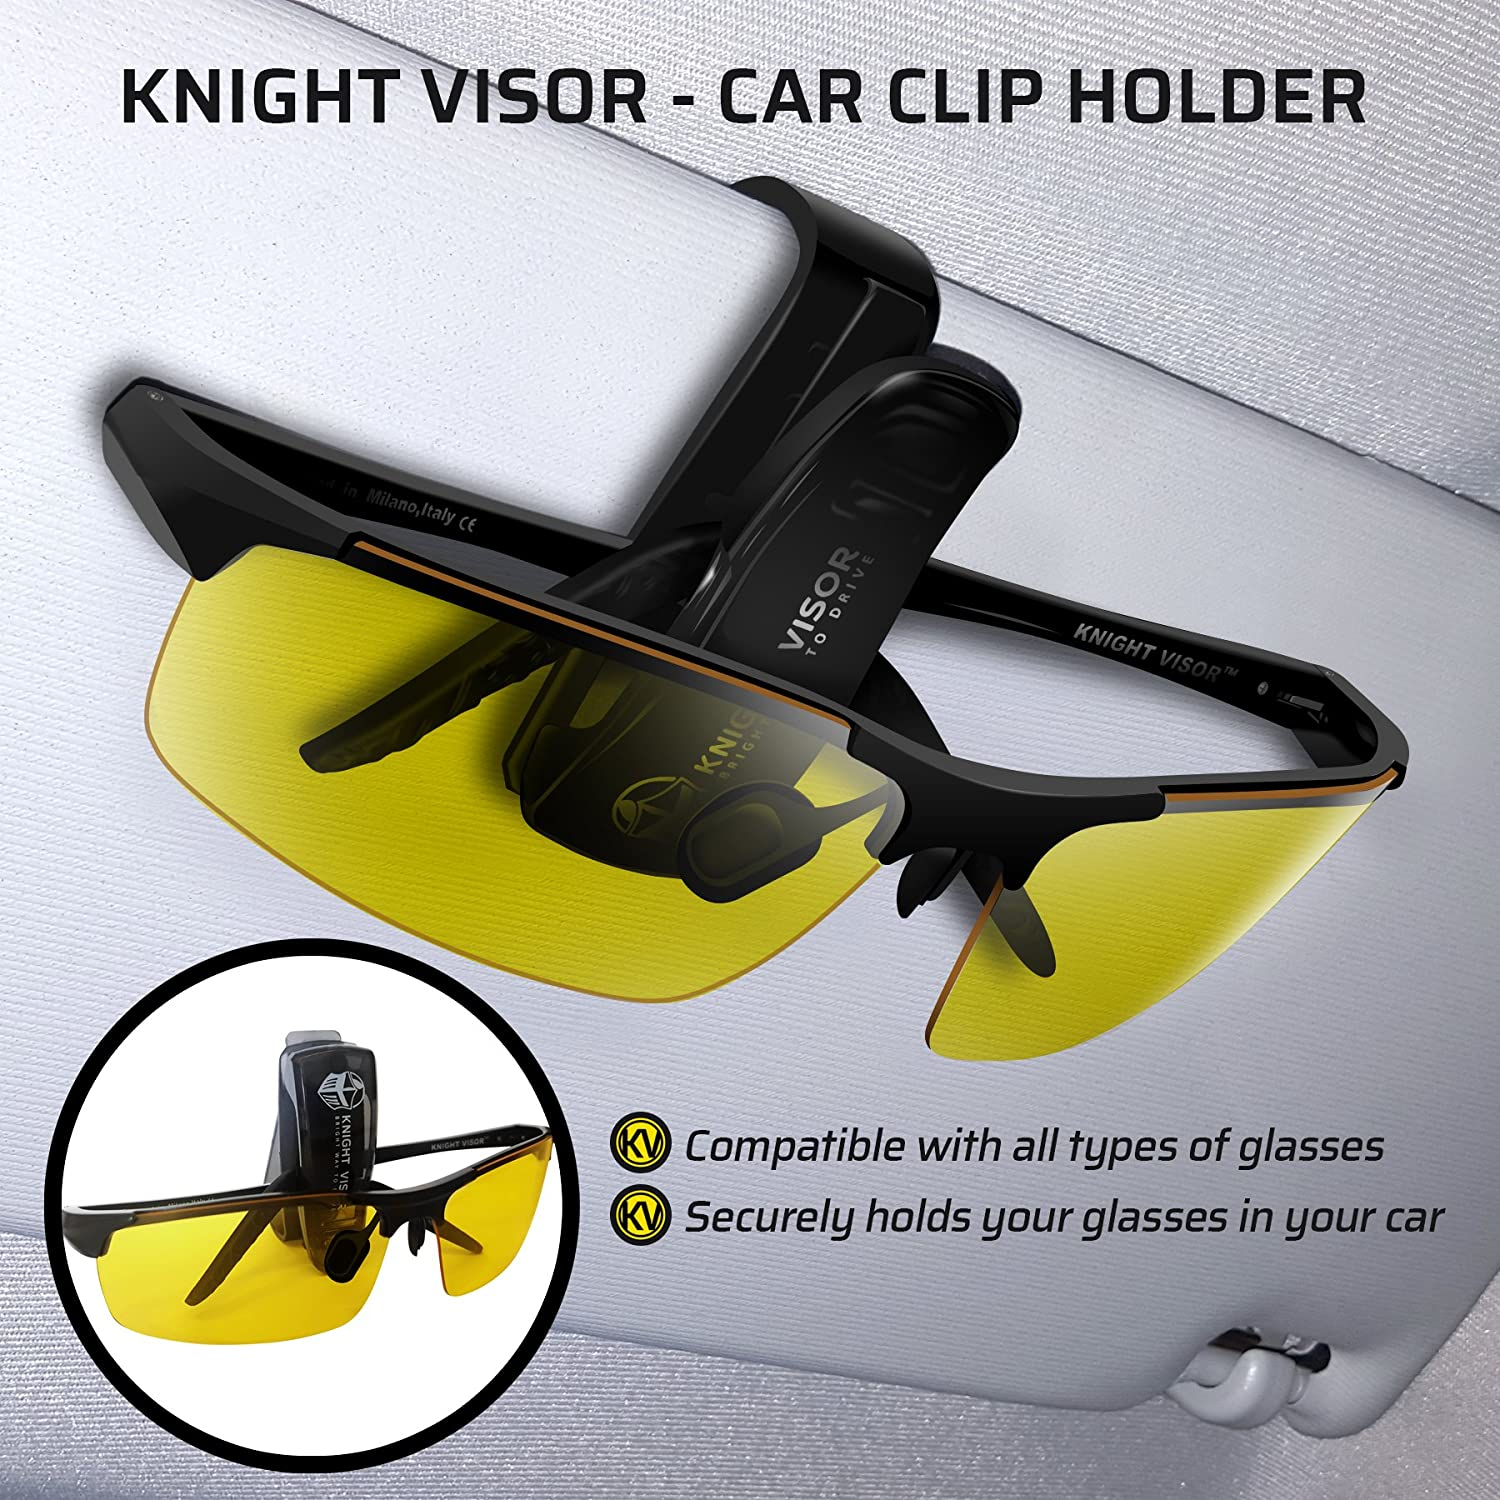 Amazon.com : BLUPOND Night Driving Glasses - Anti-glare HD Vision - Yellow  Tint Polycarbonate Lens - Safety Sunglasses for Men and Women Plus Car Clip  ...